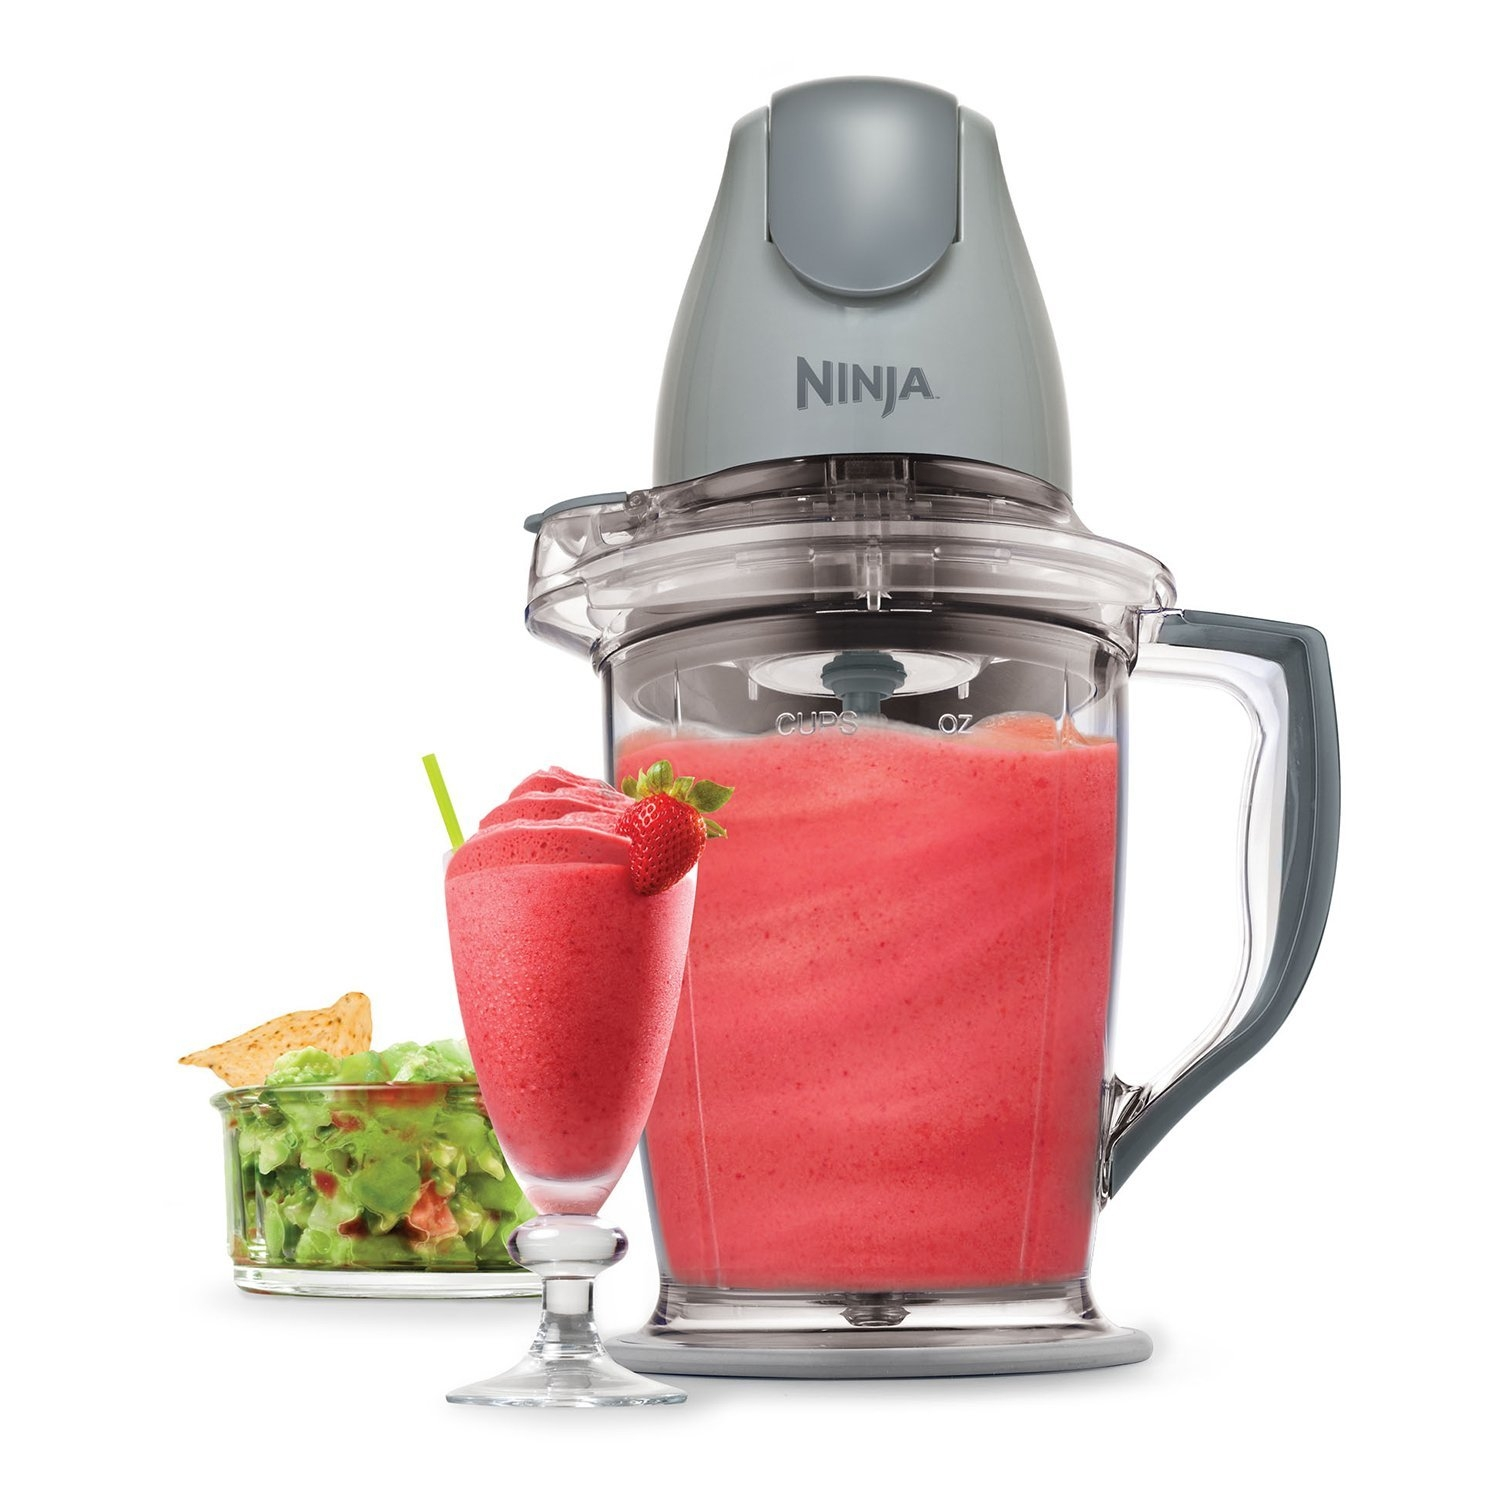 Put the power in the palm of your hand with this 400 Watt Complete Blender Food Processor Pitcher with Pulse Technology that crushes ice into snow in seconds, blends frozen fruits into creamy smoothies, and chops fresh ingredients evenly! Mince, dice, chop, blend, and puree for consistent results in the 16 oz (2 cup) chopper bowl and achieve perfect frozen blending in the 48 oz (6 cup) pitcher. The interchangeable and ergonomic 400-watt power pod quickly switches between the 16-oz chopper bowl or 48-ounce pitcher for added versatility in the kitchen. The pod features a large one-touch pulsing button for ultimate control and consistent results. Wide, no-slip bases and splashguards on the pitcher and chopper keep everything steady and clean. For added convenience, storage lids are included to keep your food fresh and all removable parts are dishwasher-safe.